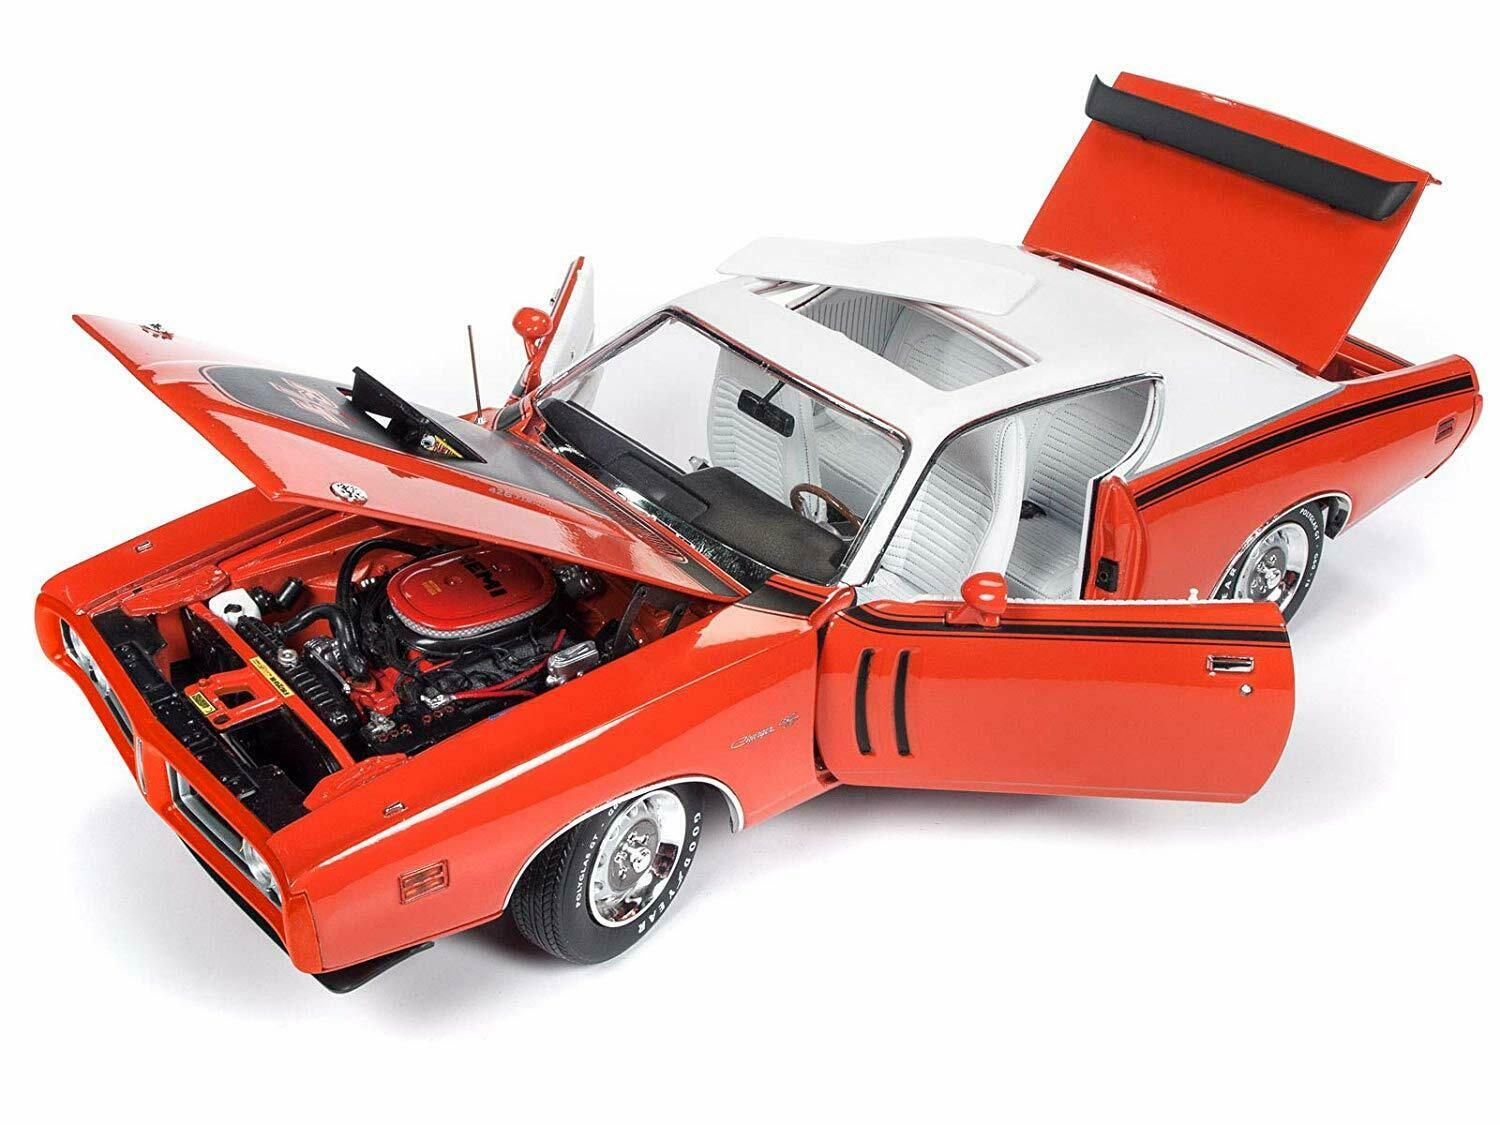 Dodge CHARGER R-T HARDTOP + SUNROOF 1971 (1 18) AUTOWelt